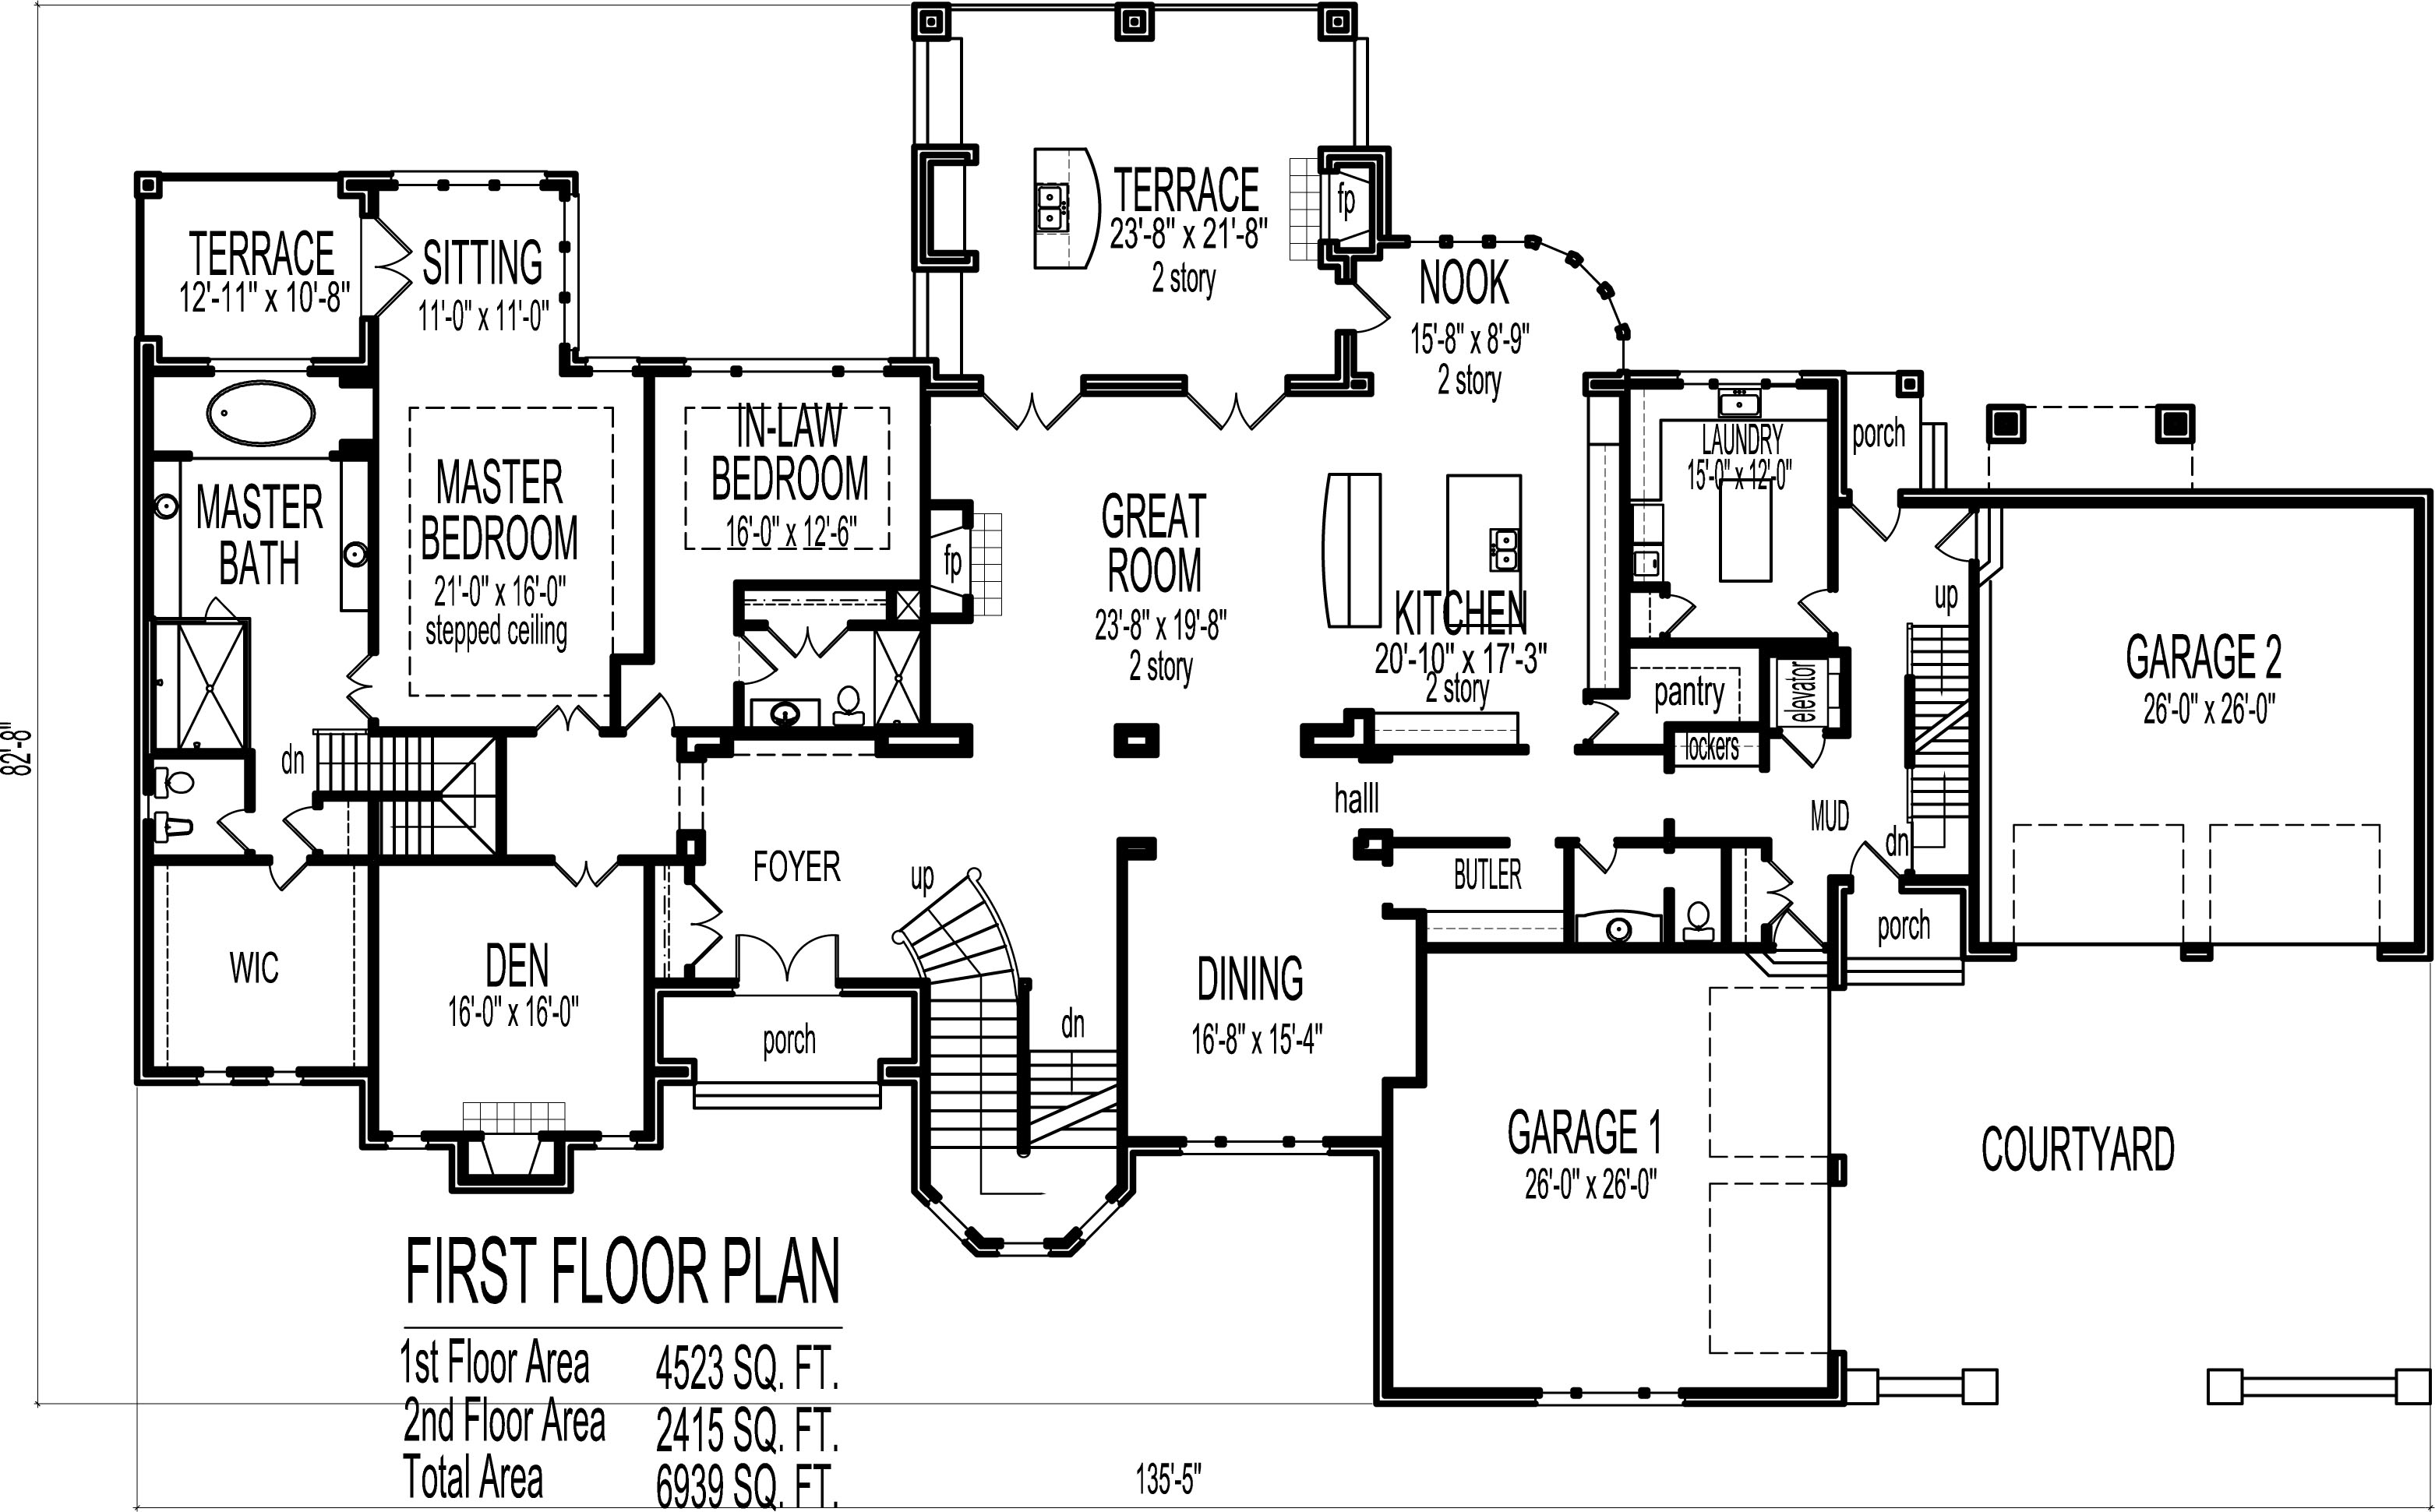 Mansion house floor plans blueprints 6 bedroom 2 story for 7 bedroom house plans